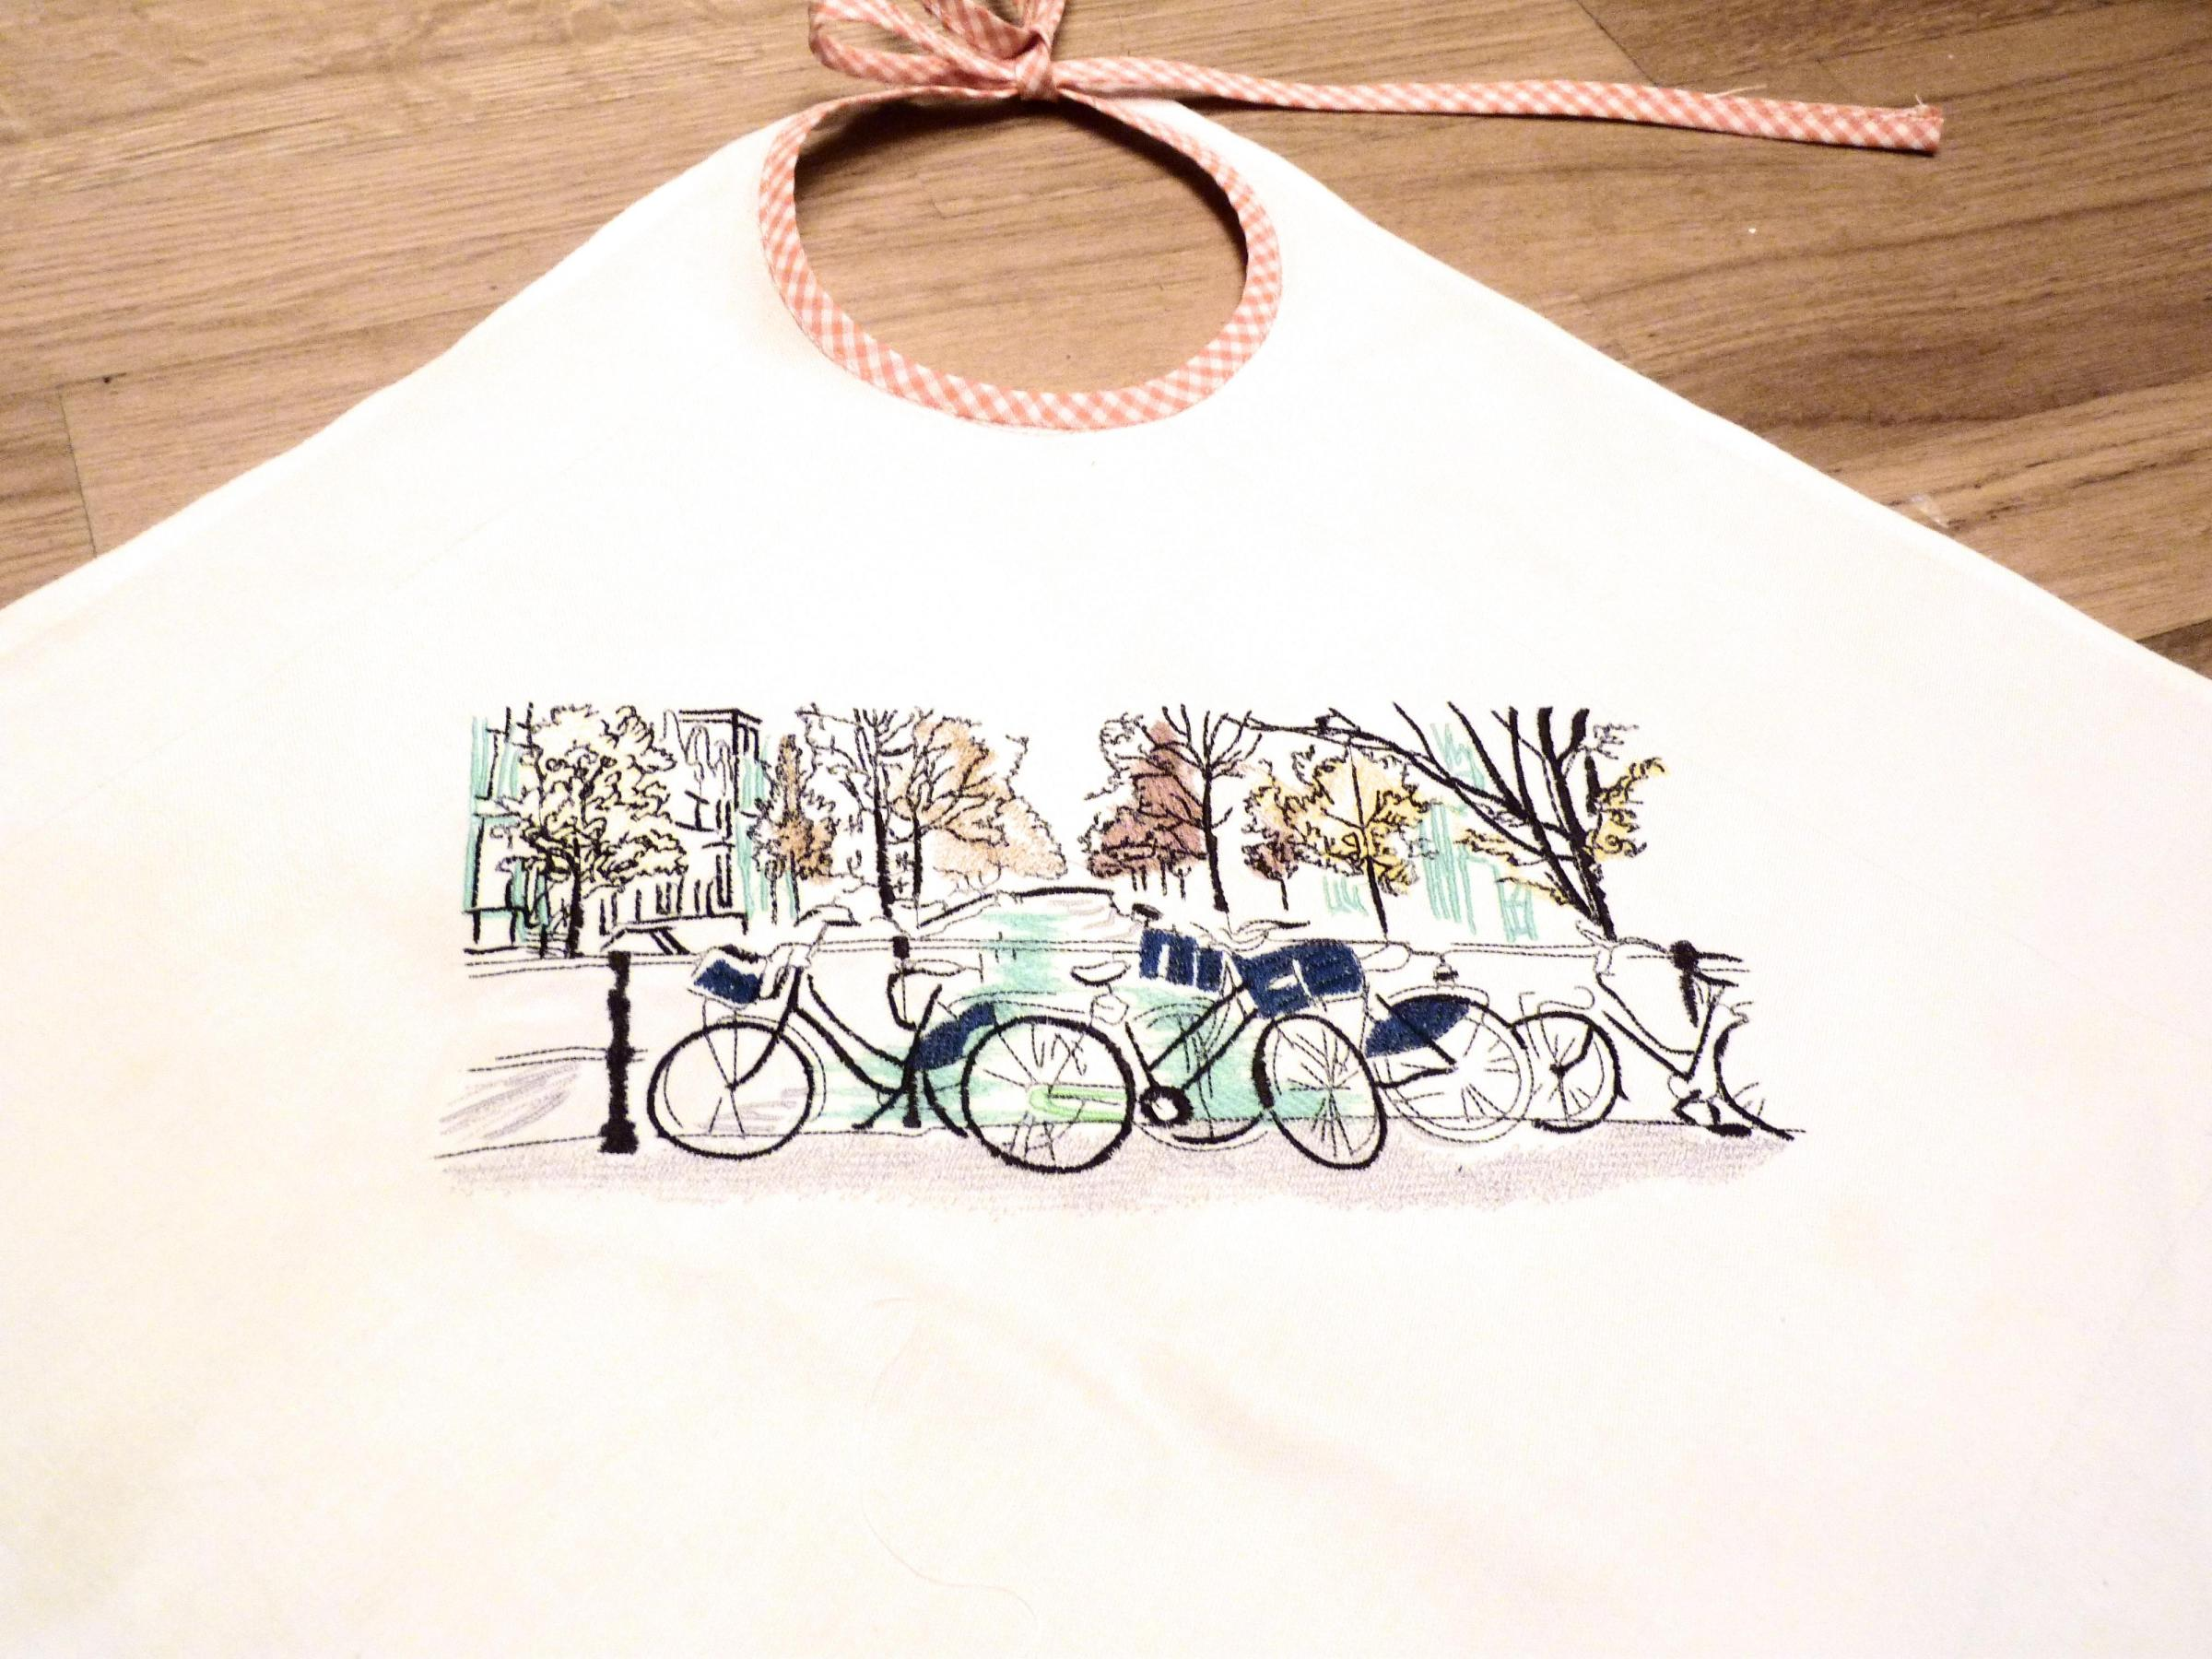 Fragment of embroidered bib with Bicycles design